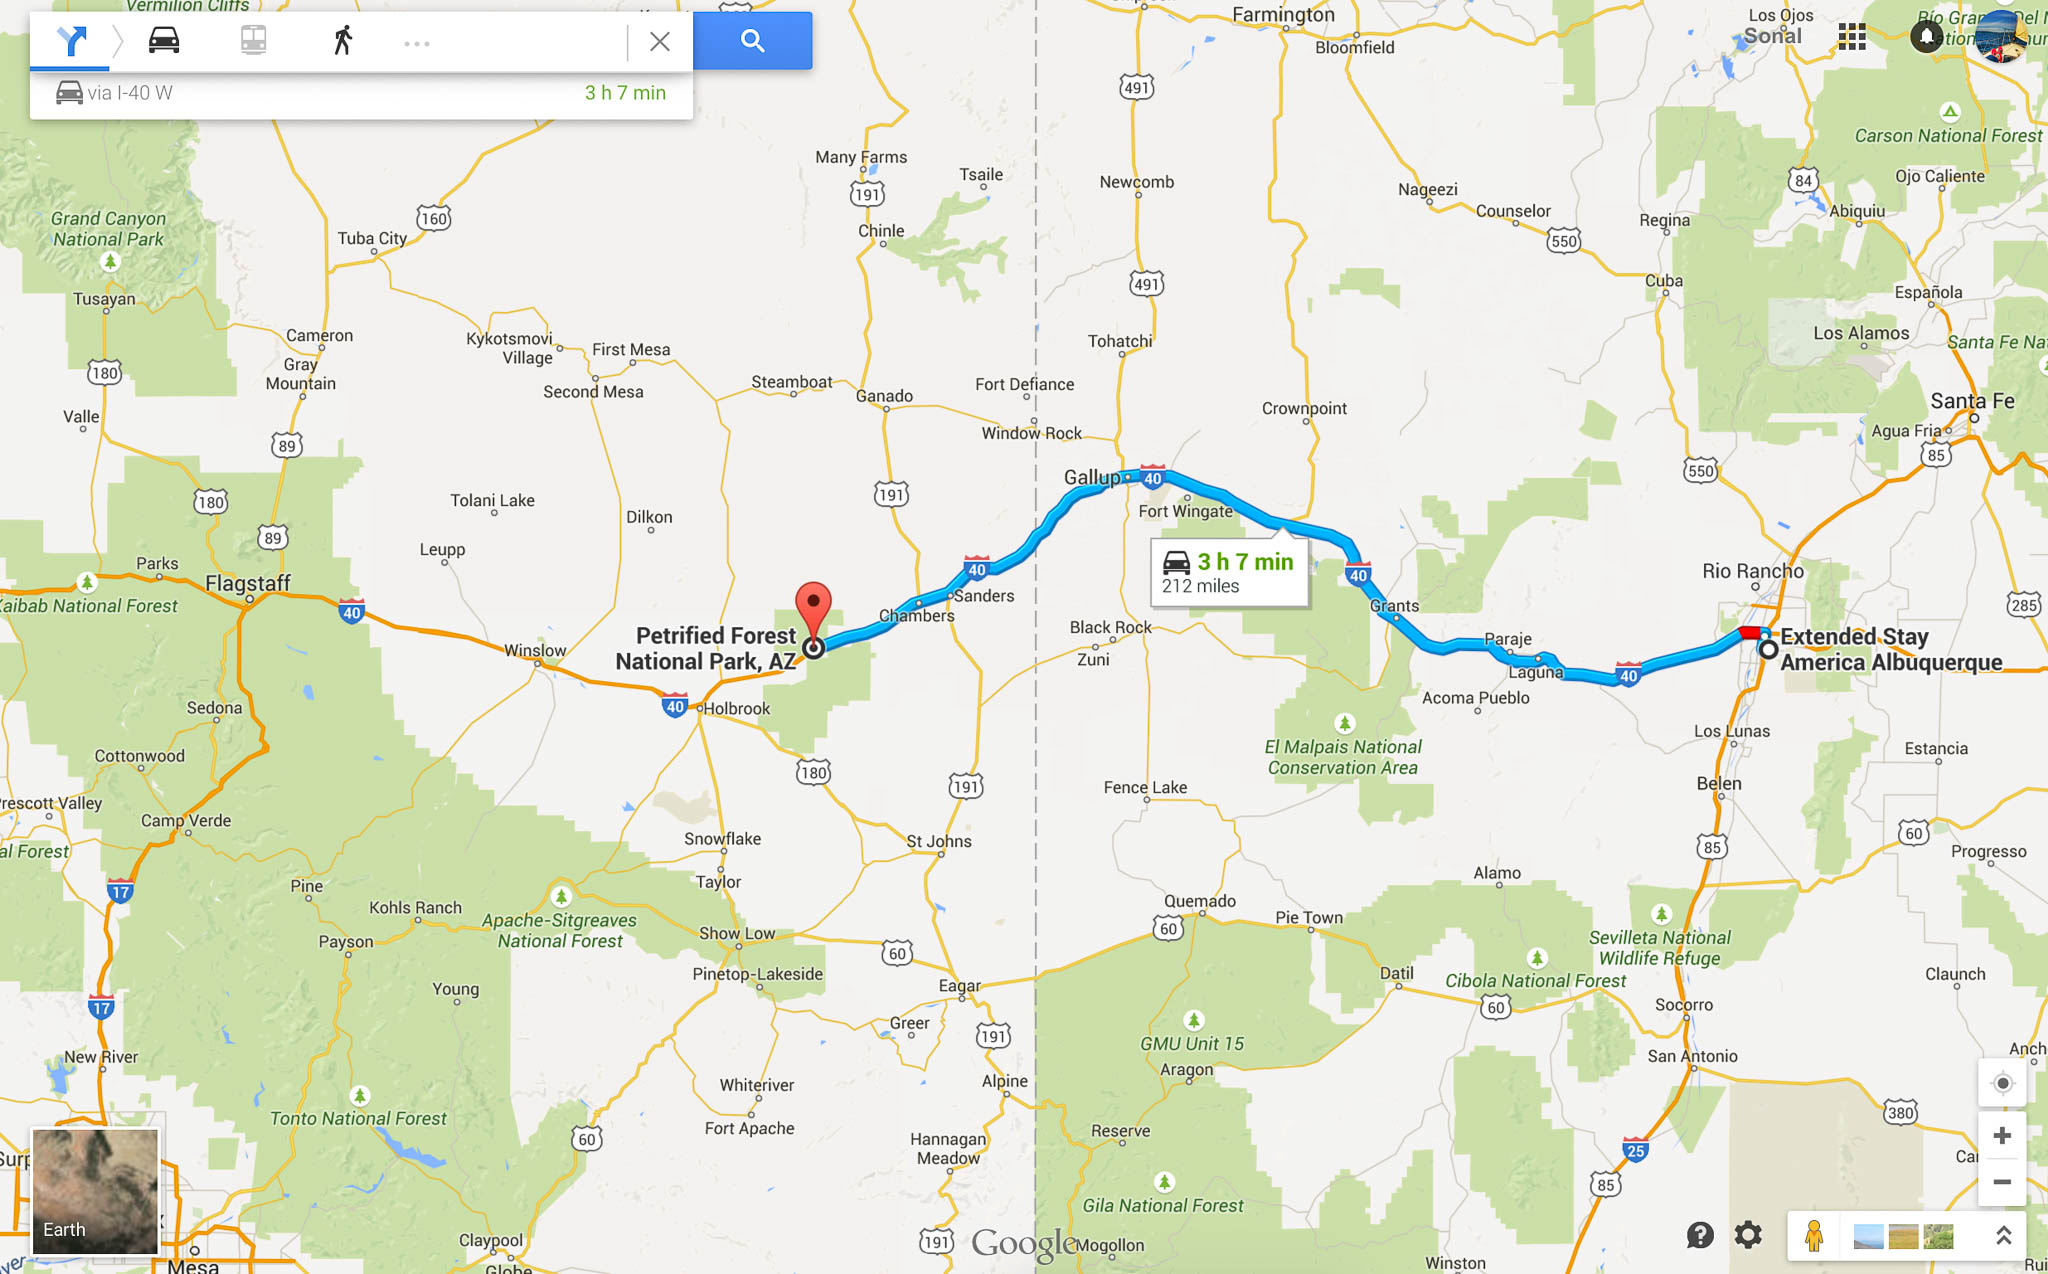 Directions to Petrified Forest National Park in Northern Arizona from Albuquerque, NM